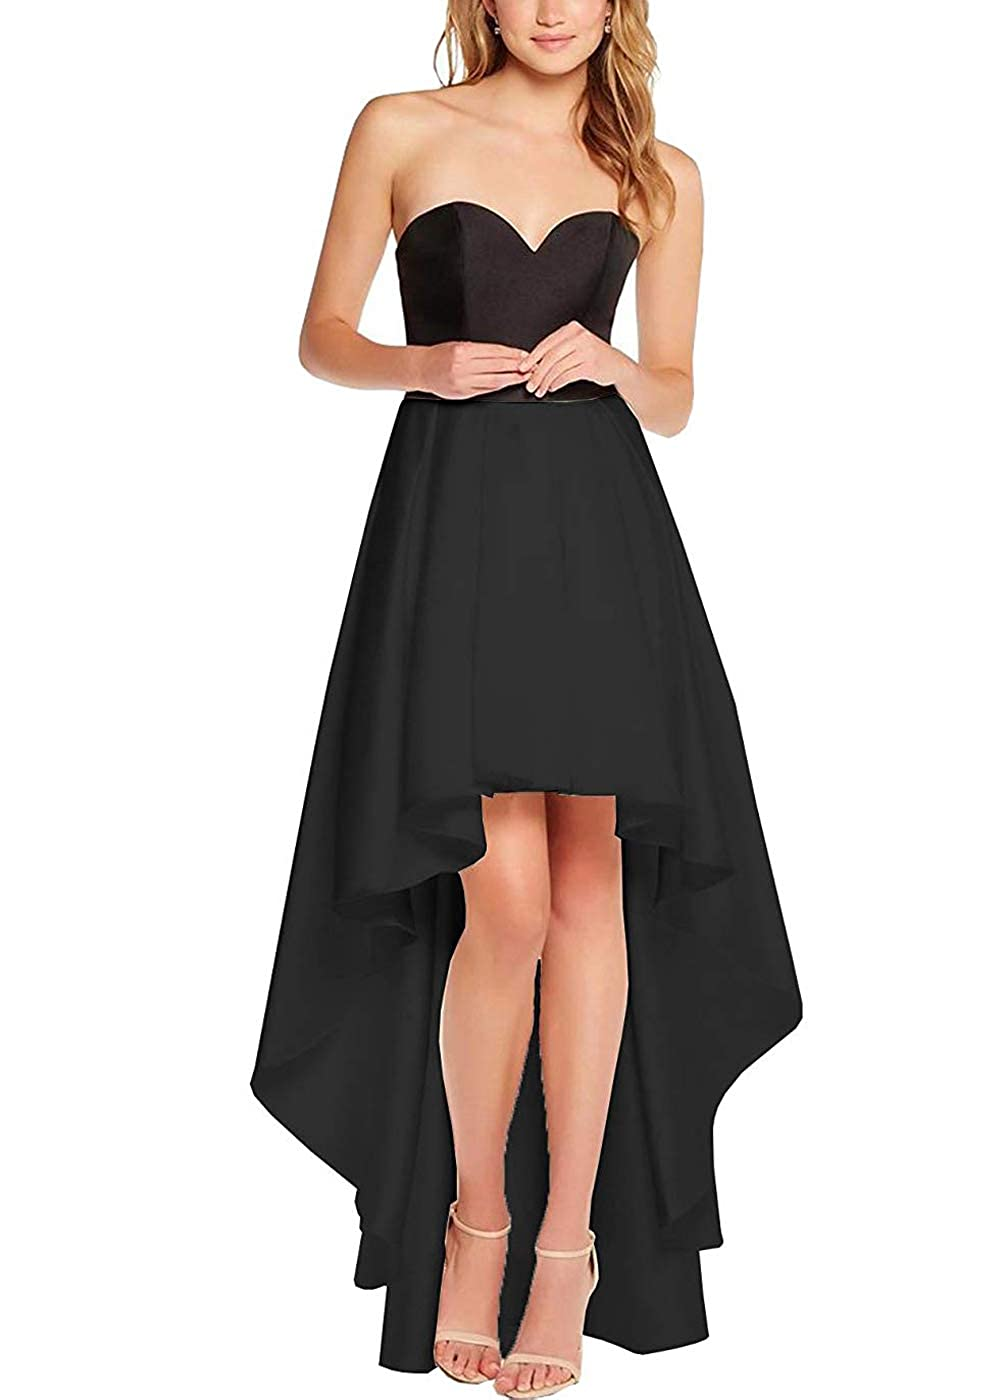 Black purpleDresses Women's High Low Satin Prom Dress Sweetheart Formal Party Prom Cocktail Gown